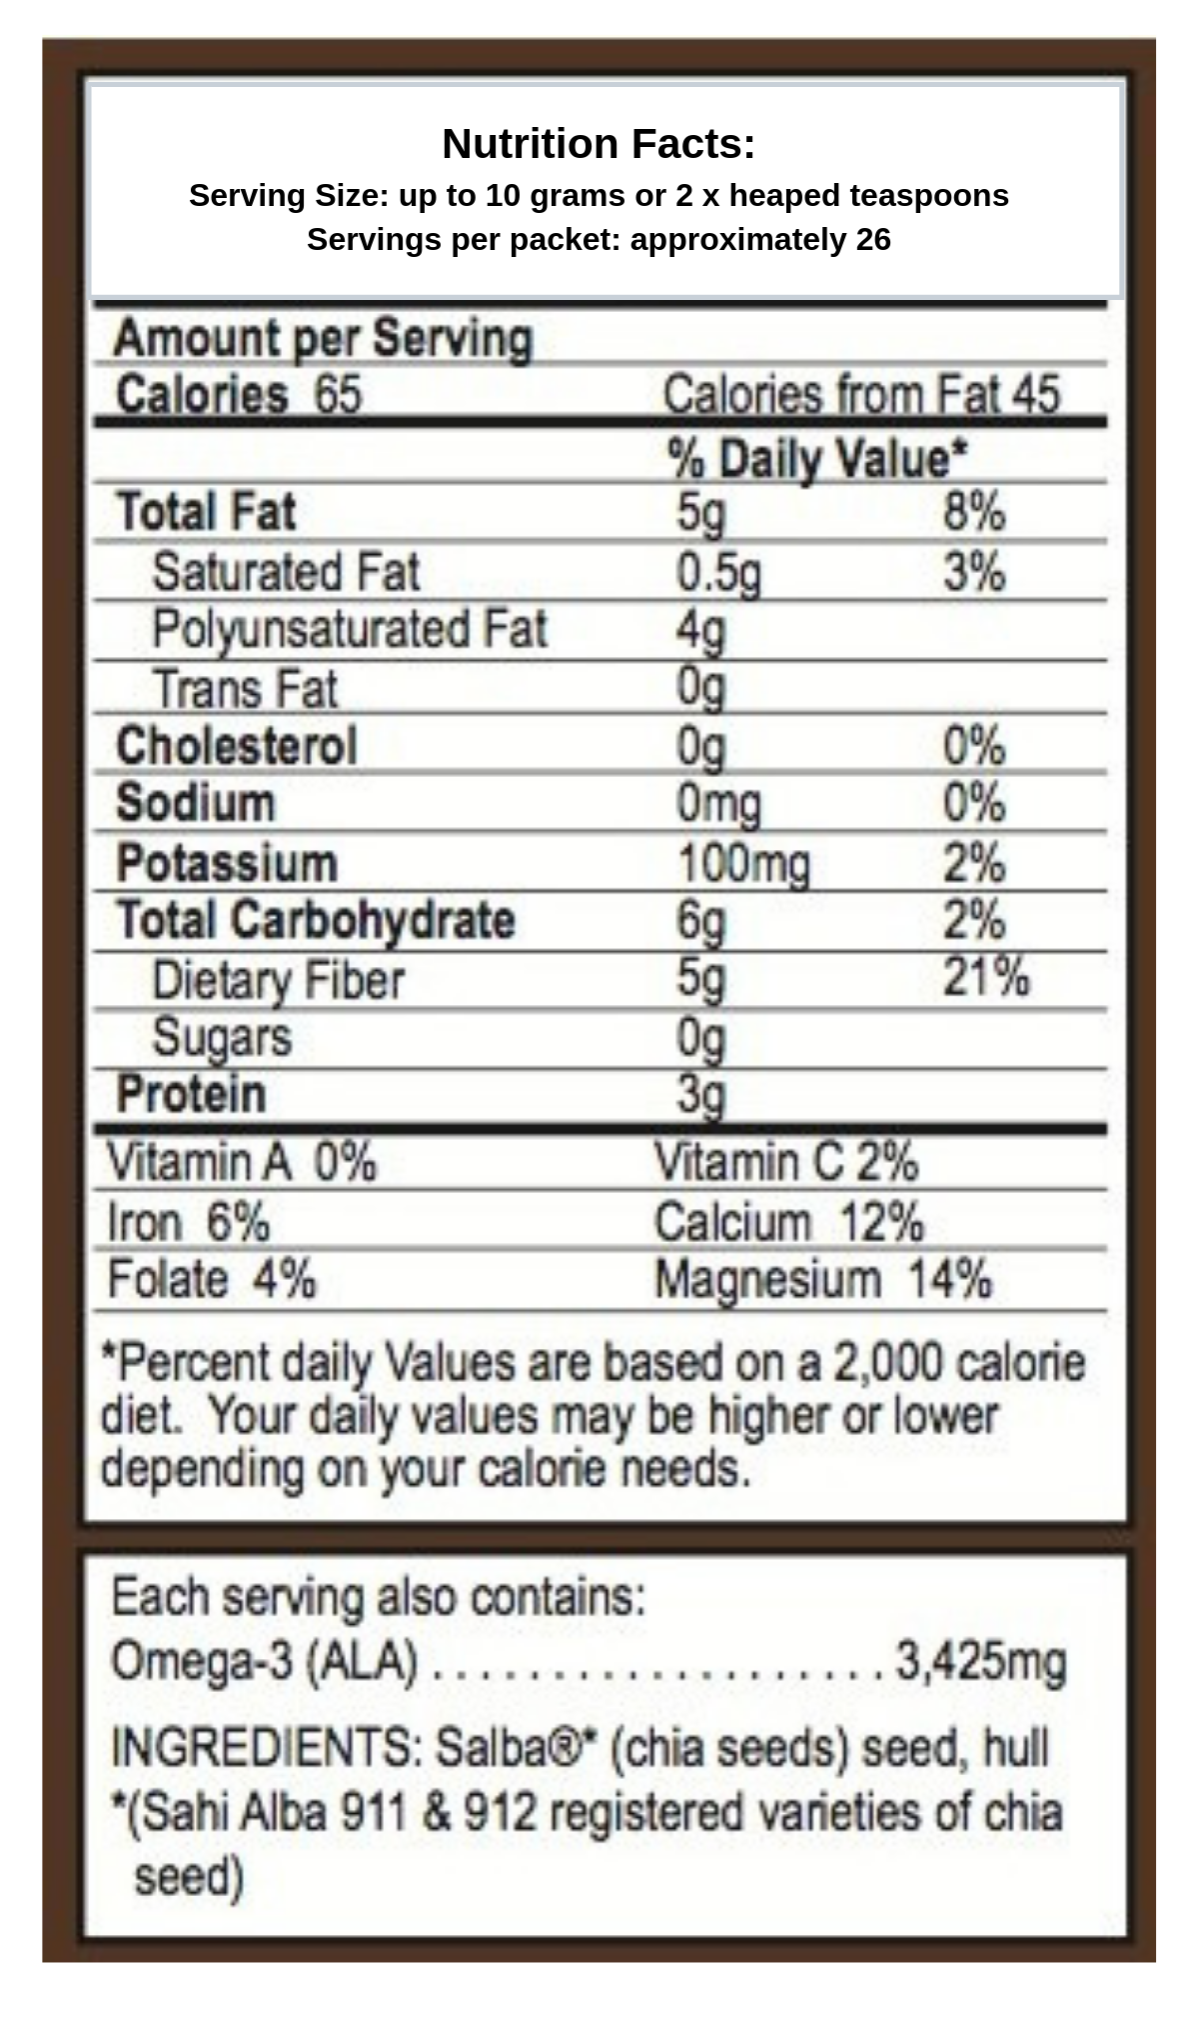 serving-size-up-to-10-grams-or-2-x-heaped-teaspoons.png